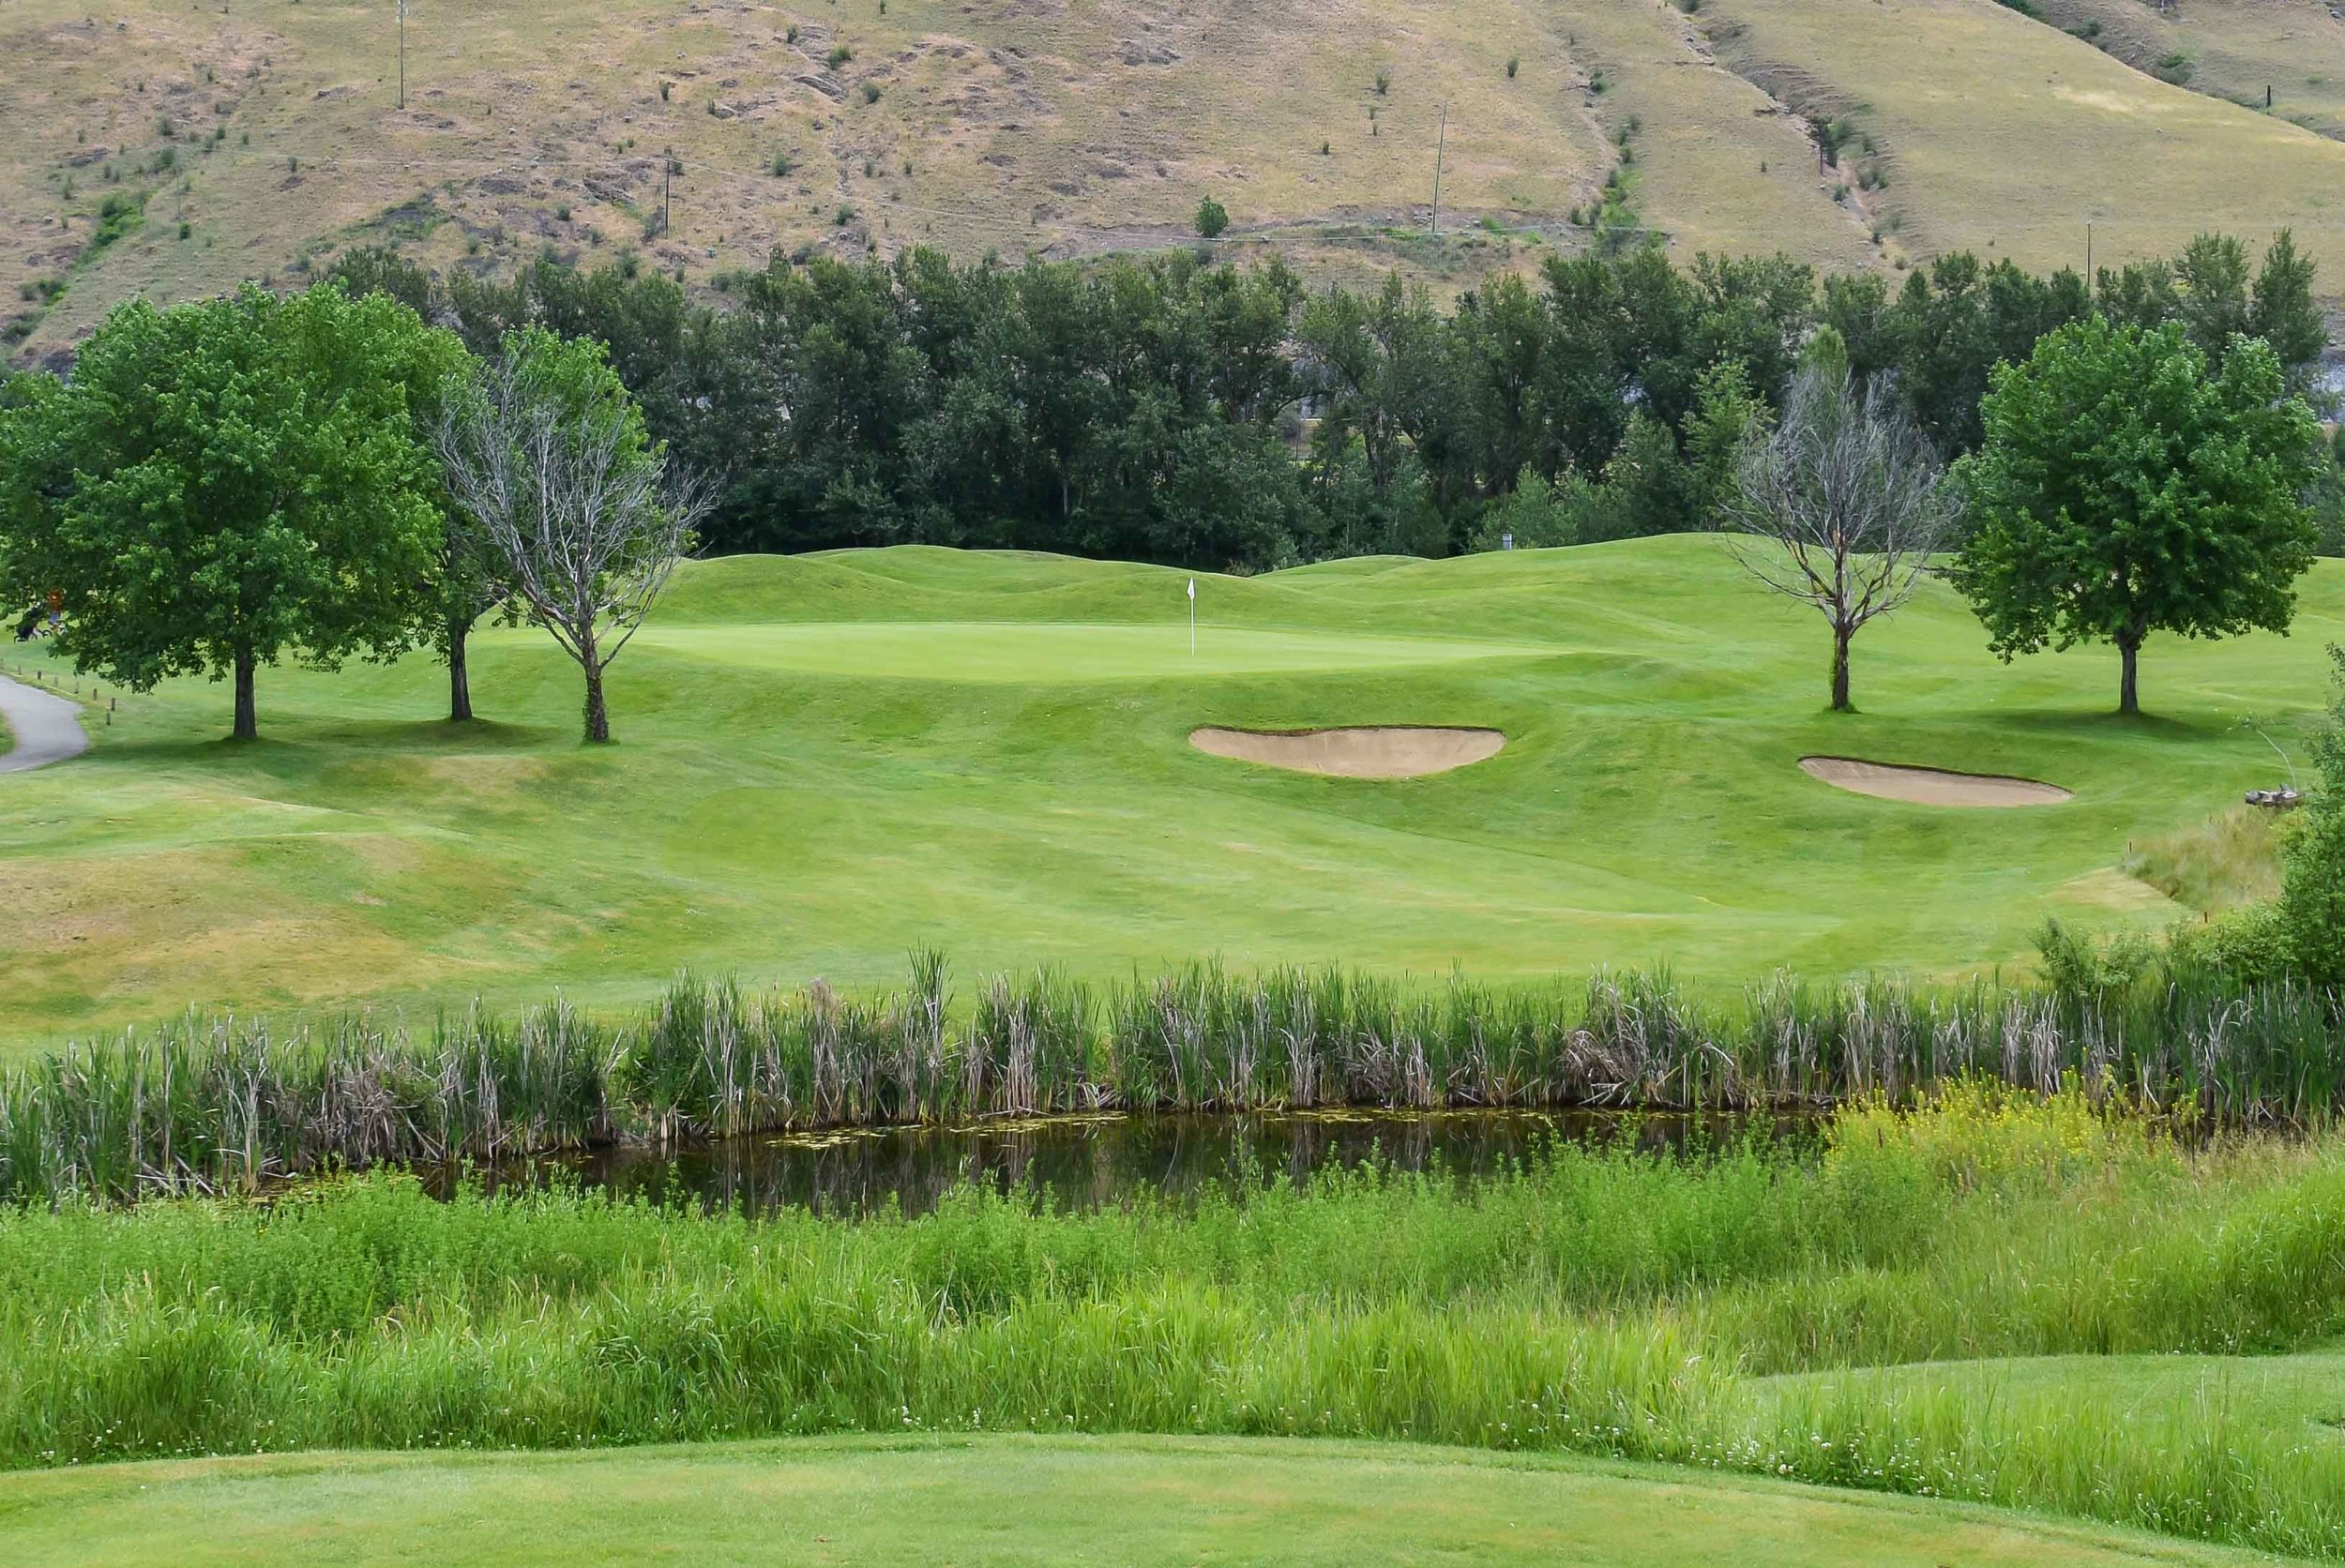 The 6th hole at The Dunes at Kamloops is a short par 3.